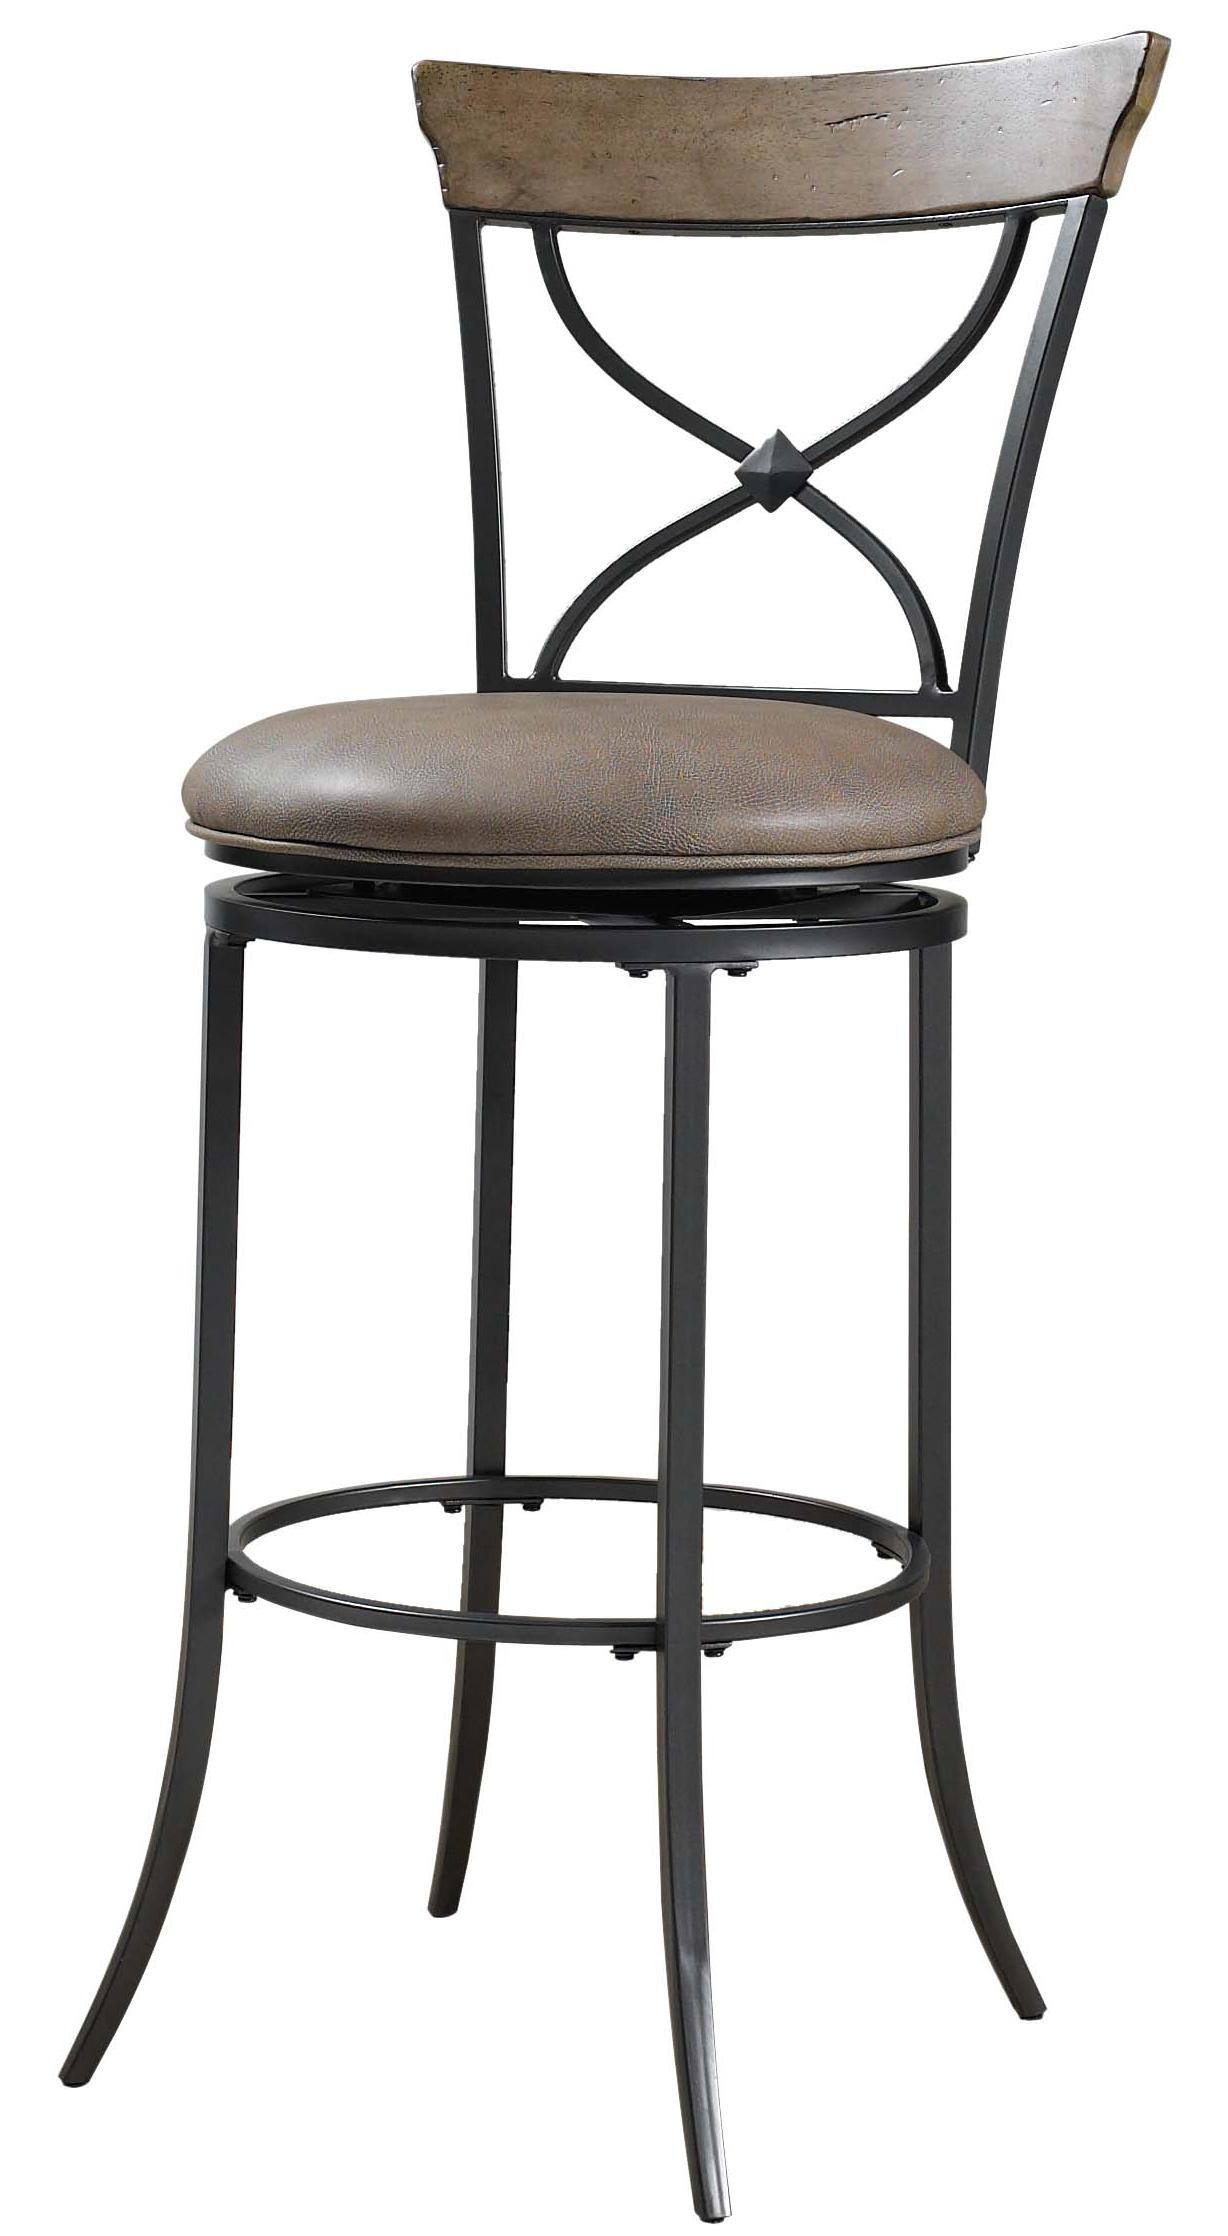 Hillsdale Metal Stools Charleston Swivel X-Back Counter Stool - Item Number: 4670-826